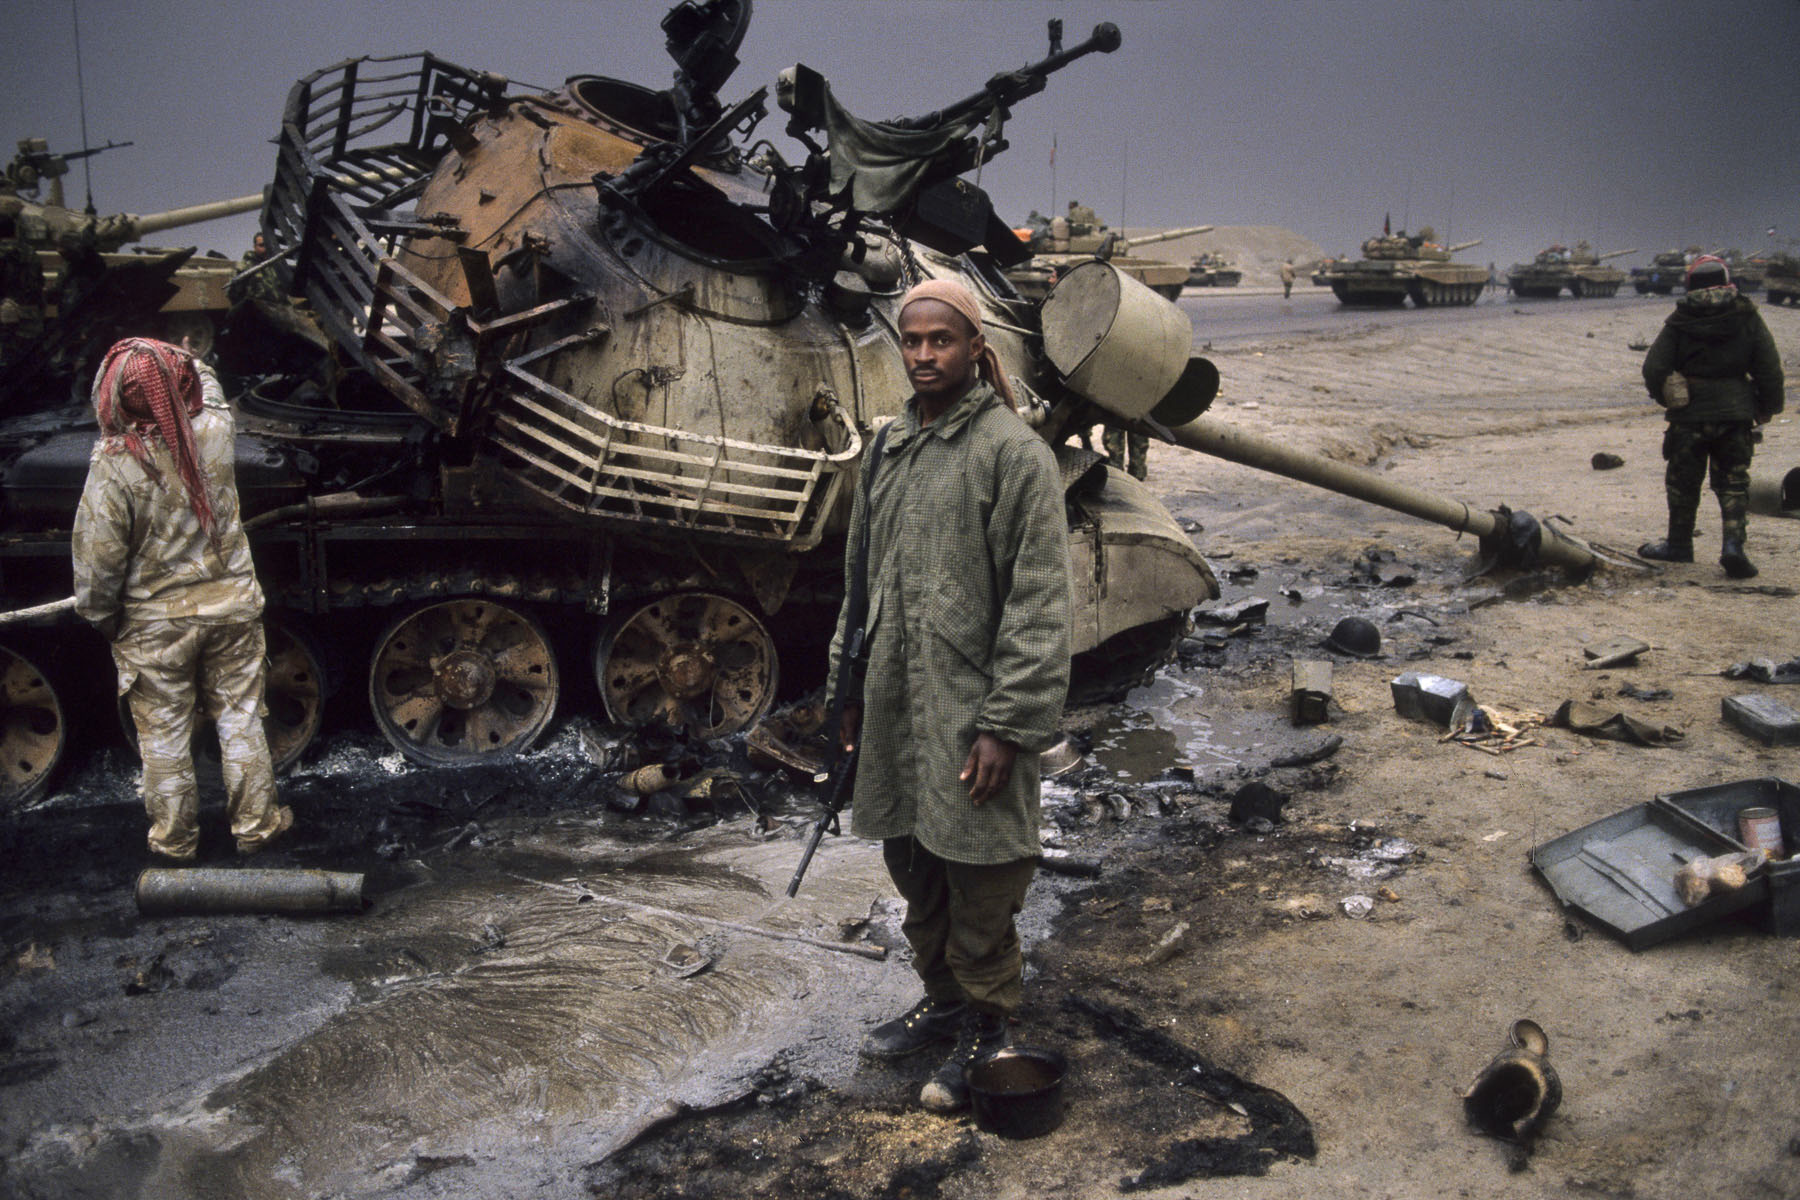 U.S. soldier stands in front of a destroyed Iraqi tank in February 1991